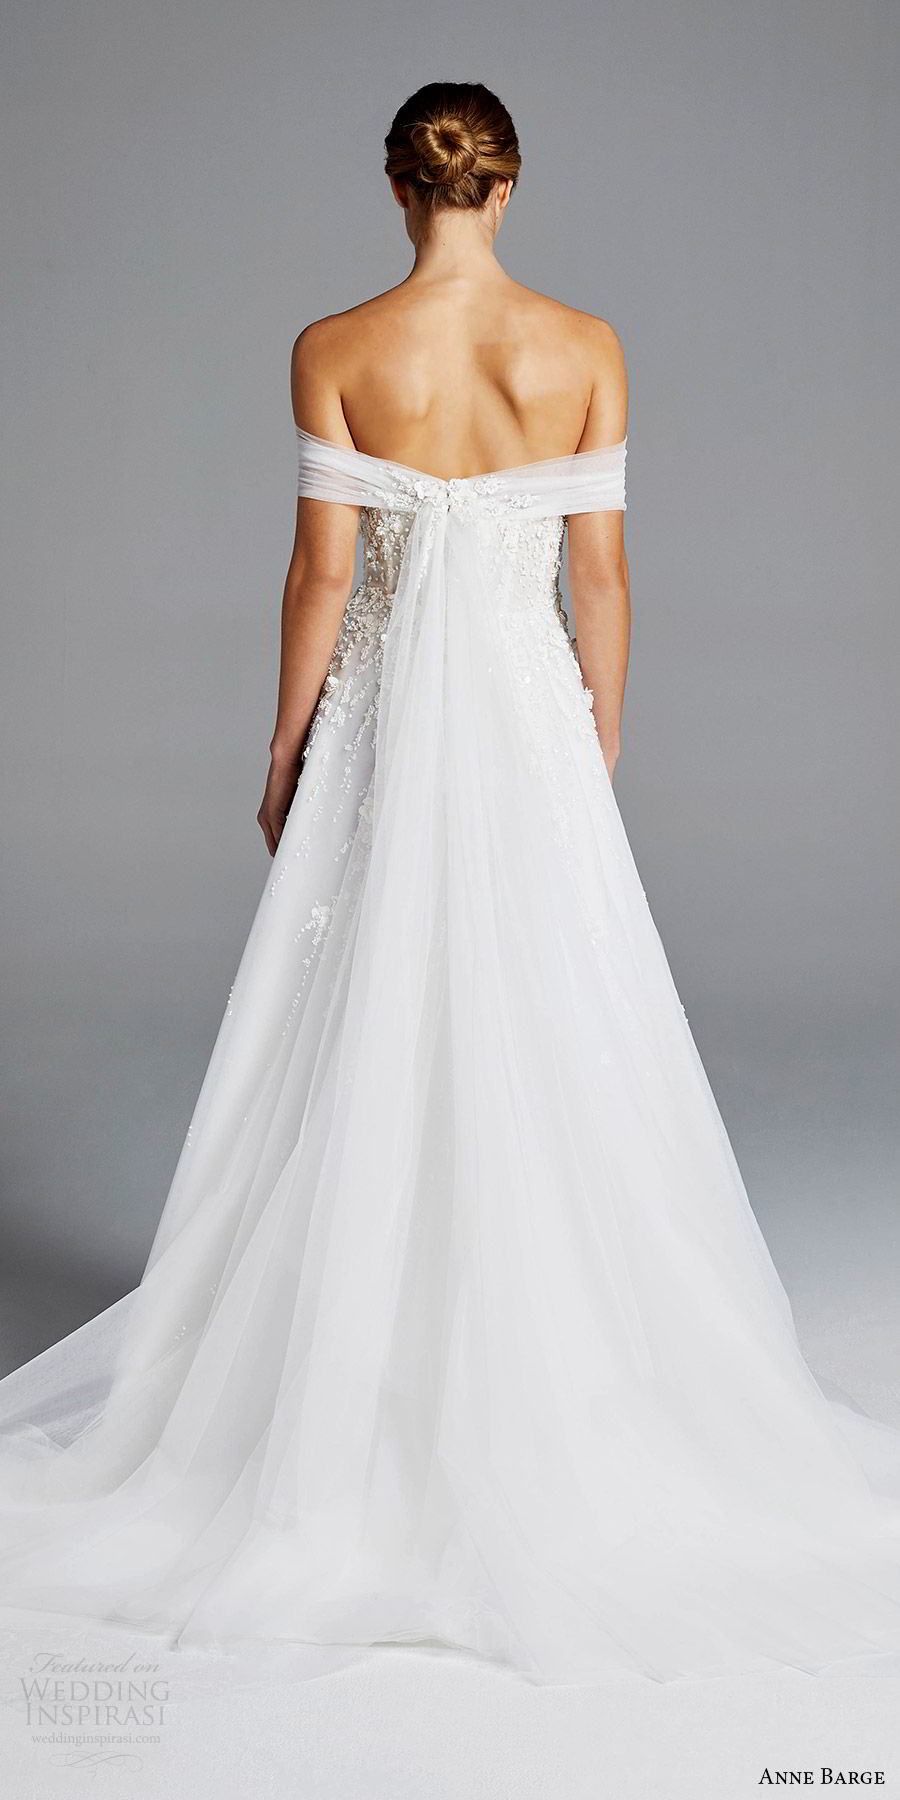 anne barge bridal spring 2019 off shoulder ruched straight cross beaded bodice a line wedding dress (karlie) bv elegant romantic